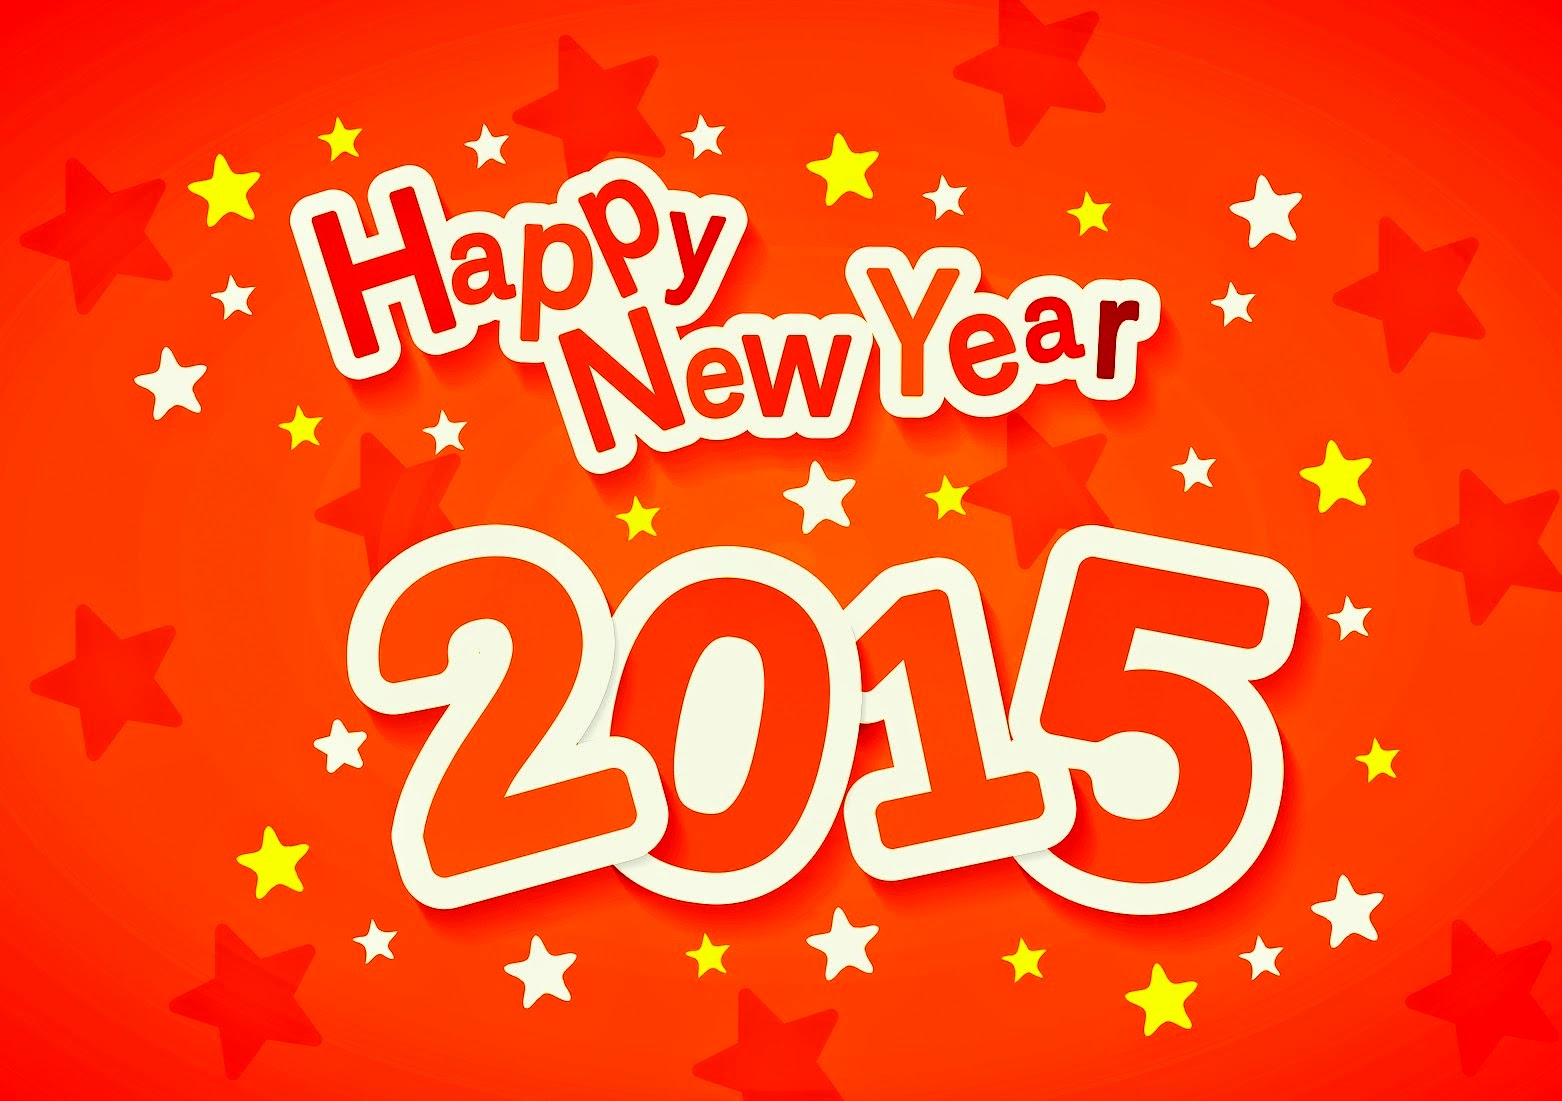 Happy new year 2015 images pictures greetings wallpapers messages happy new year 2015 picture 1 kristyandbryce Images